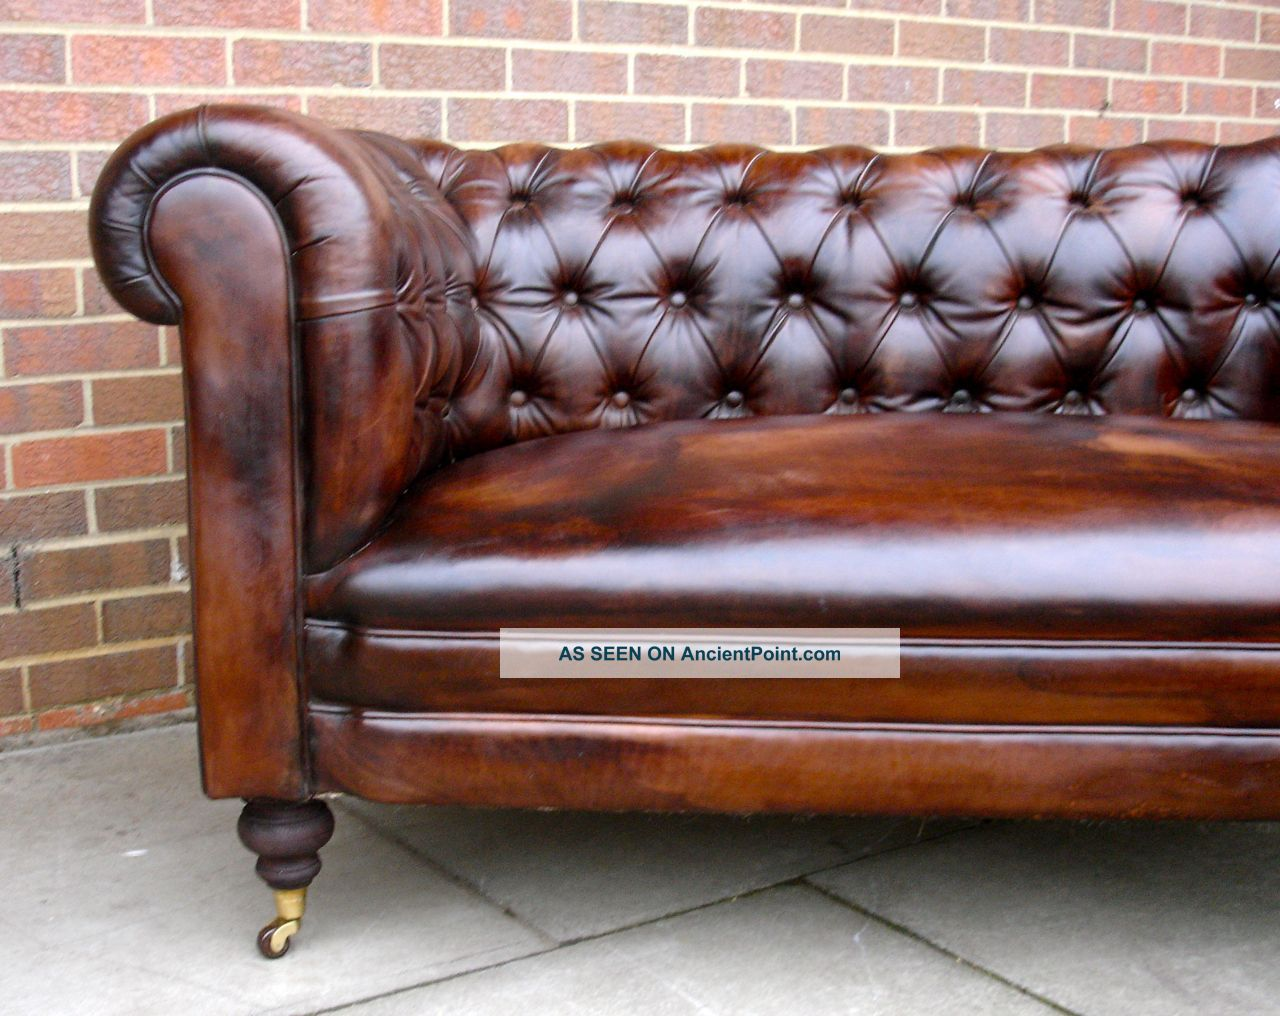 Pleasant Antique 19Thc Leather Chesterfield Sofa Drop Arm Hand Full Download Free Architecture Designs Scobabritishbridgeorg